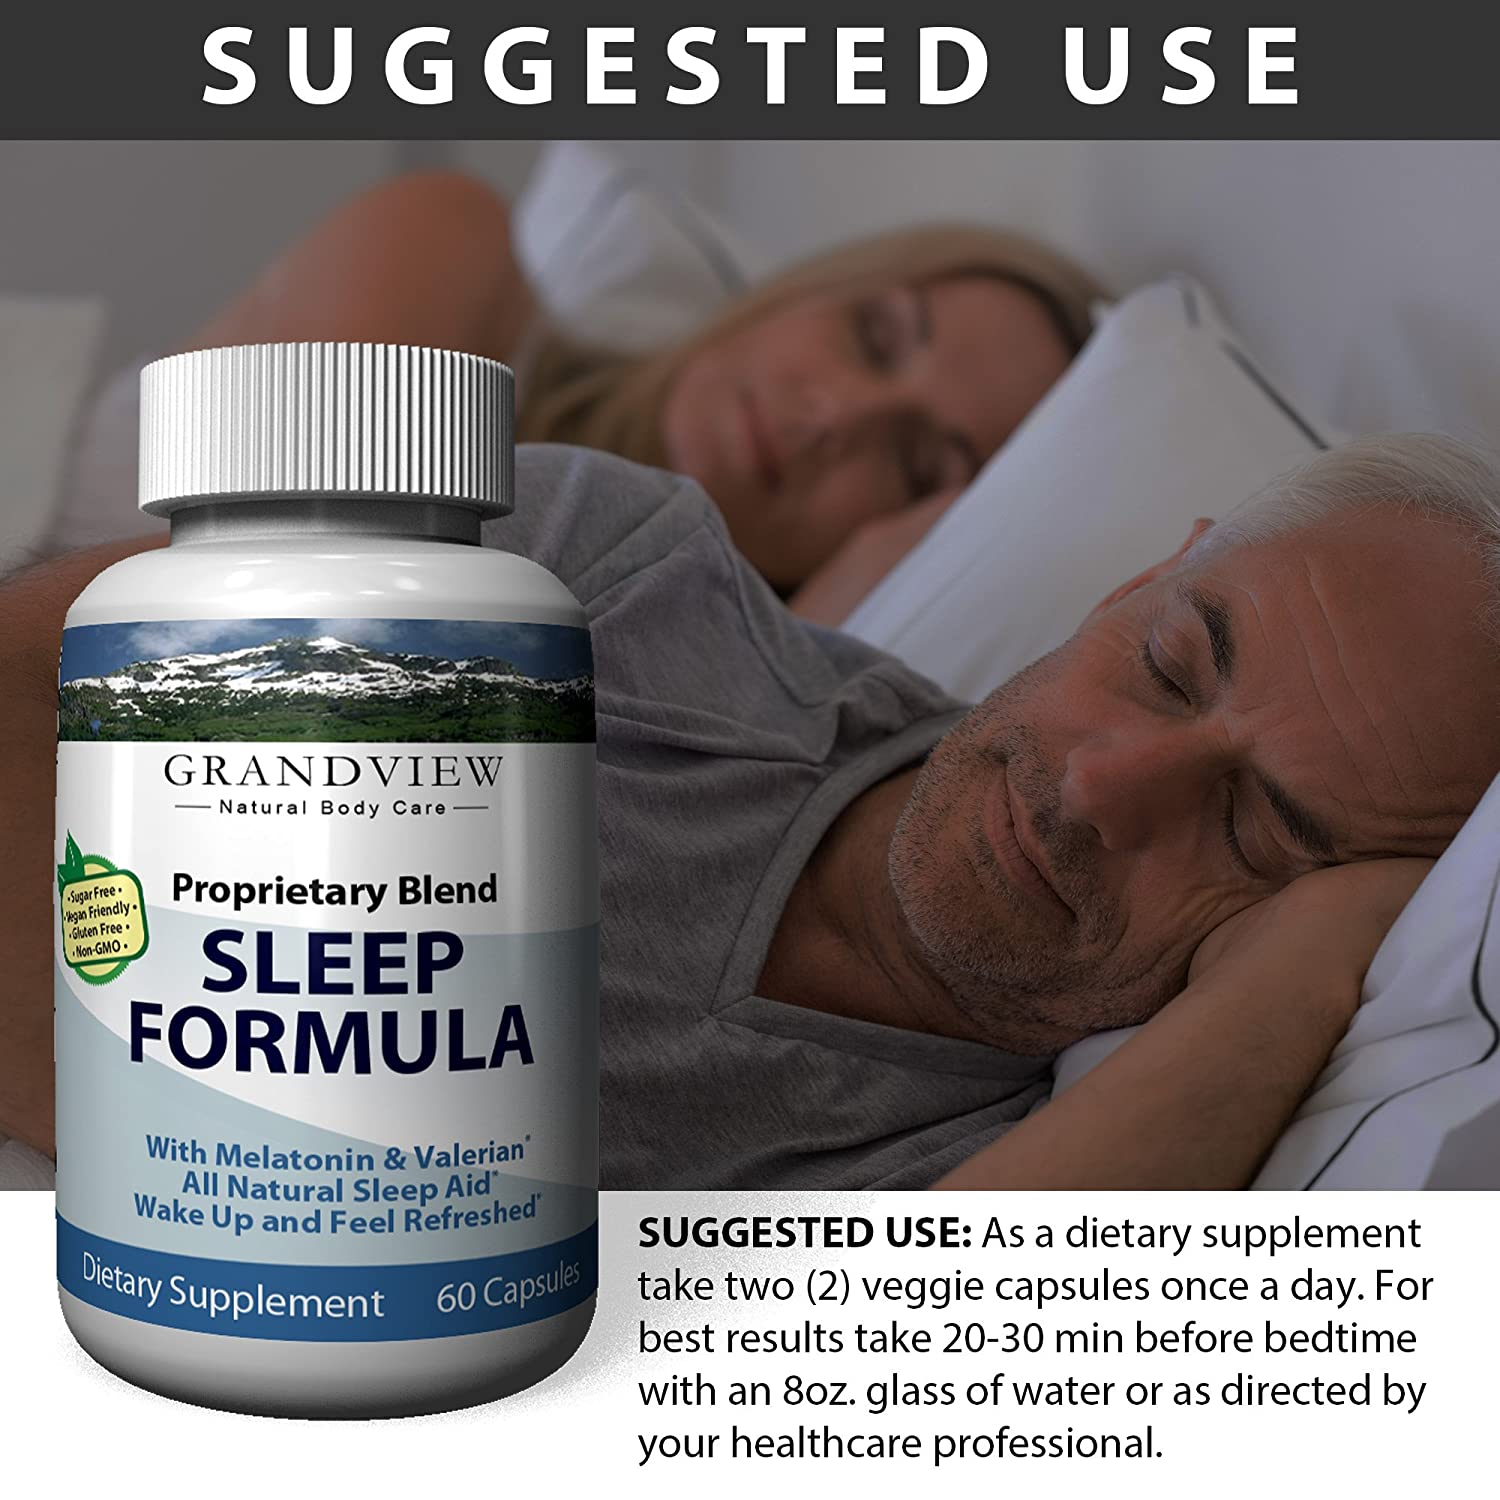 Amazon.com: Natural Sleep Aid Is An All-Natural Sleep Formula That Combines Melatonin, Valerian Root And Non-Addictive Extracts Into the Best 100% Safe ...